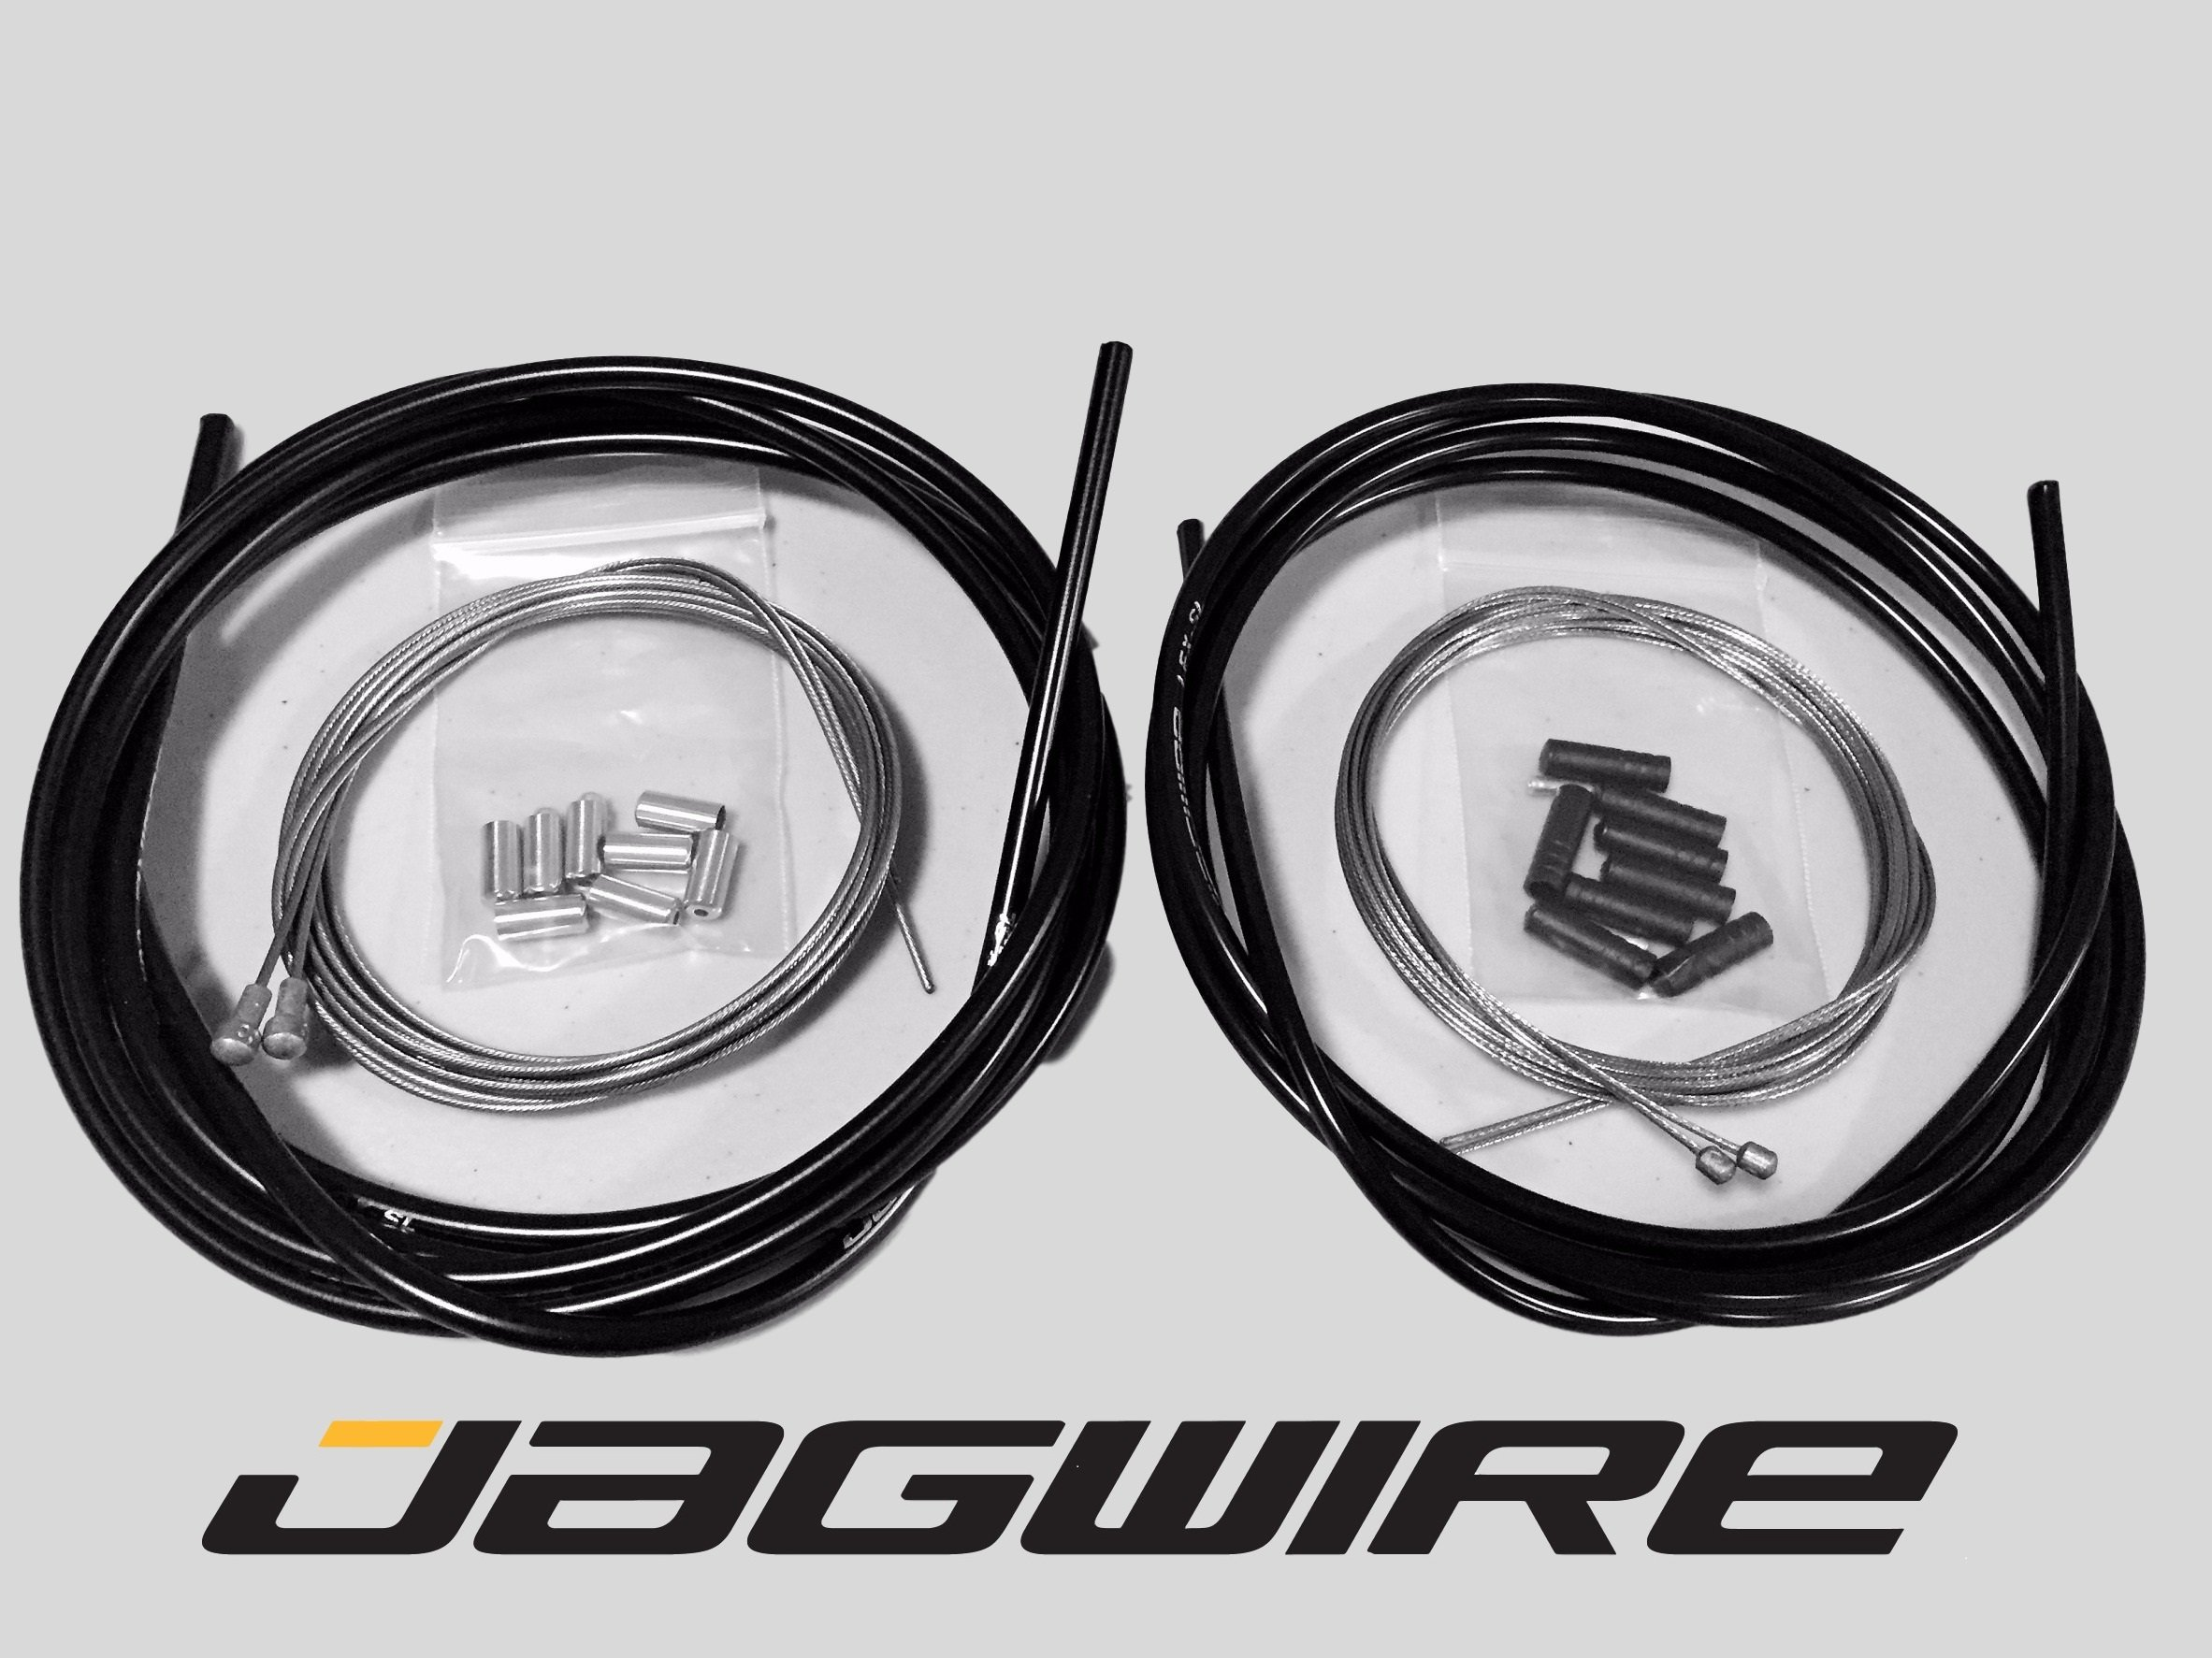 JAGWIRE ROAD SHOP KIT - Complete Brake & Shifter Cable and Housing Kit- Black - Campagnolo